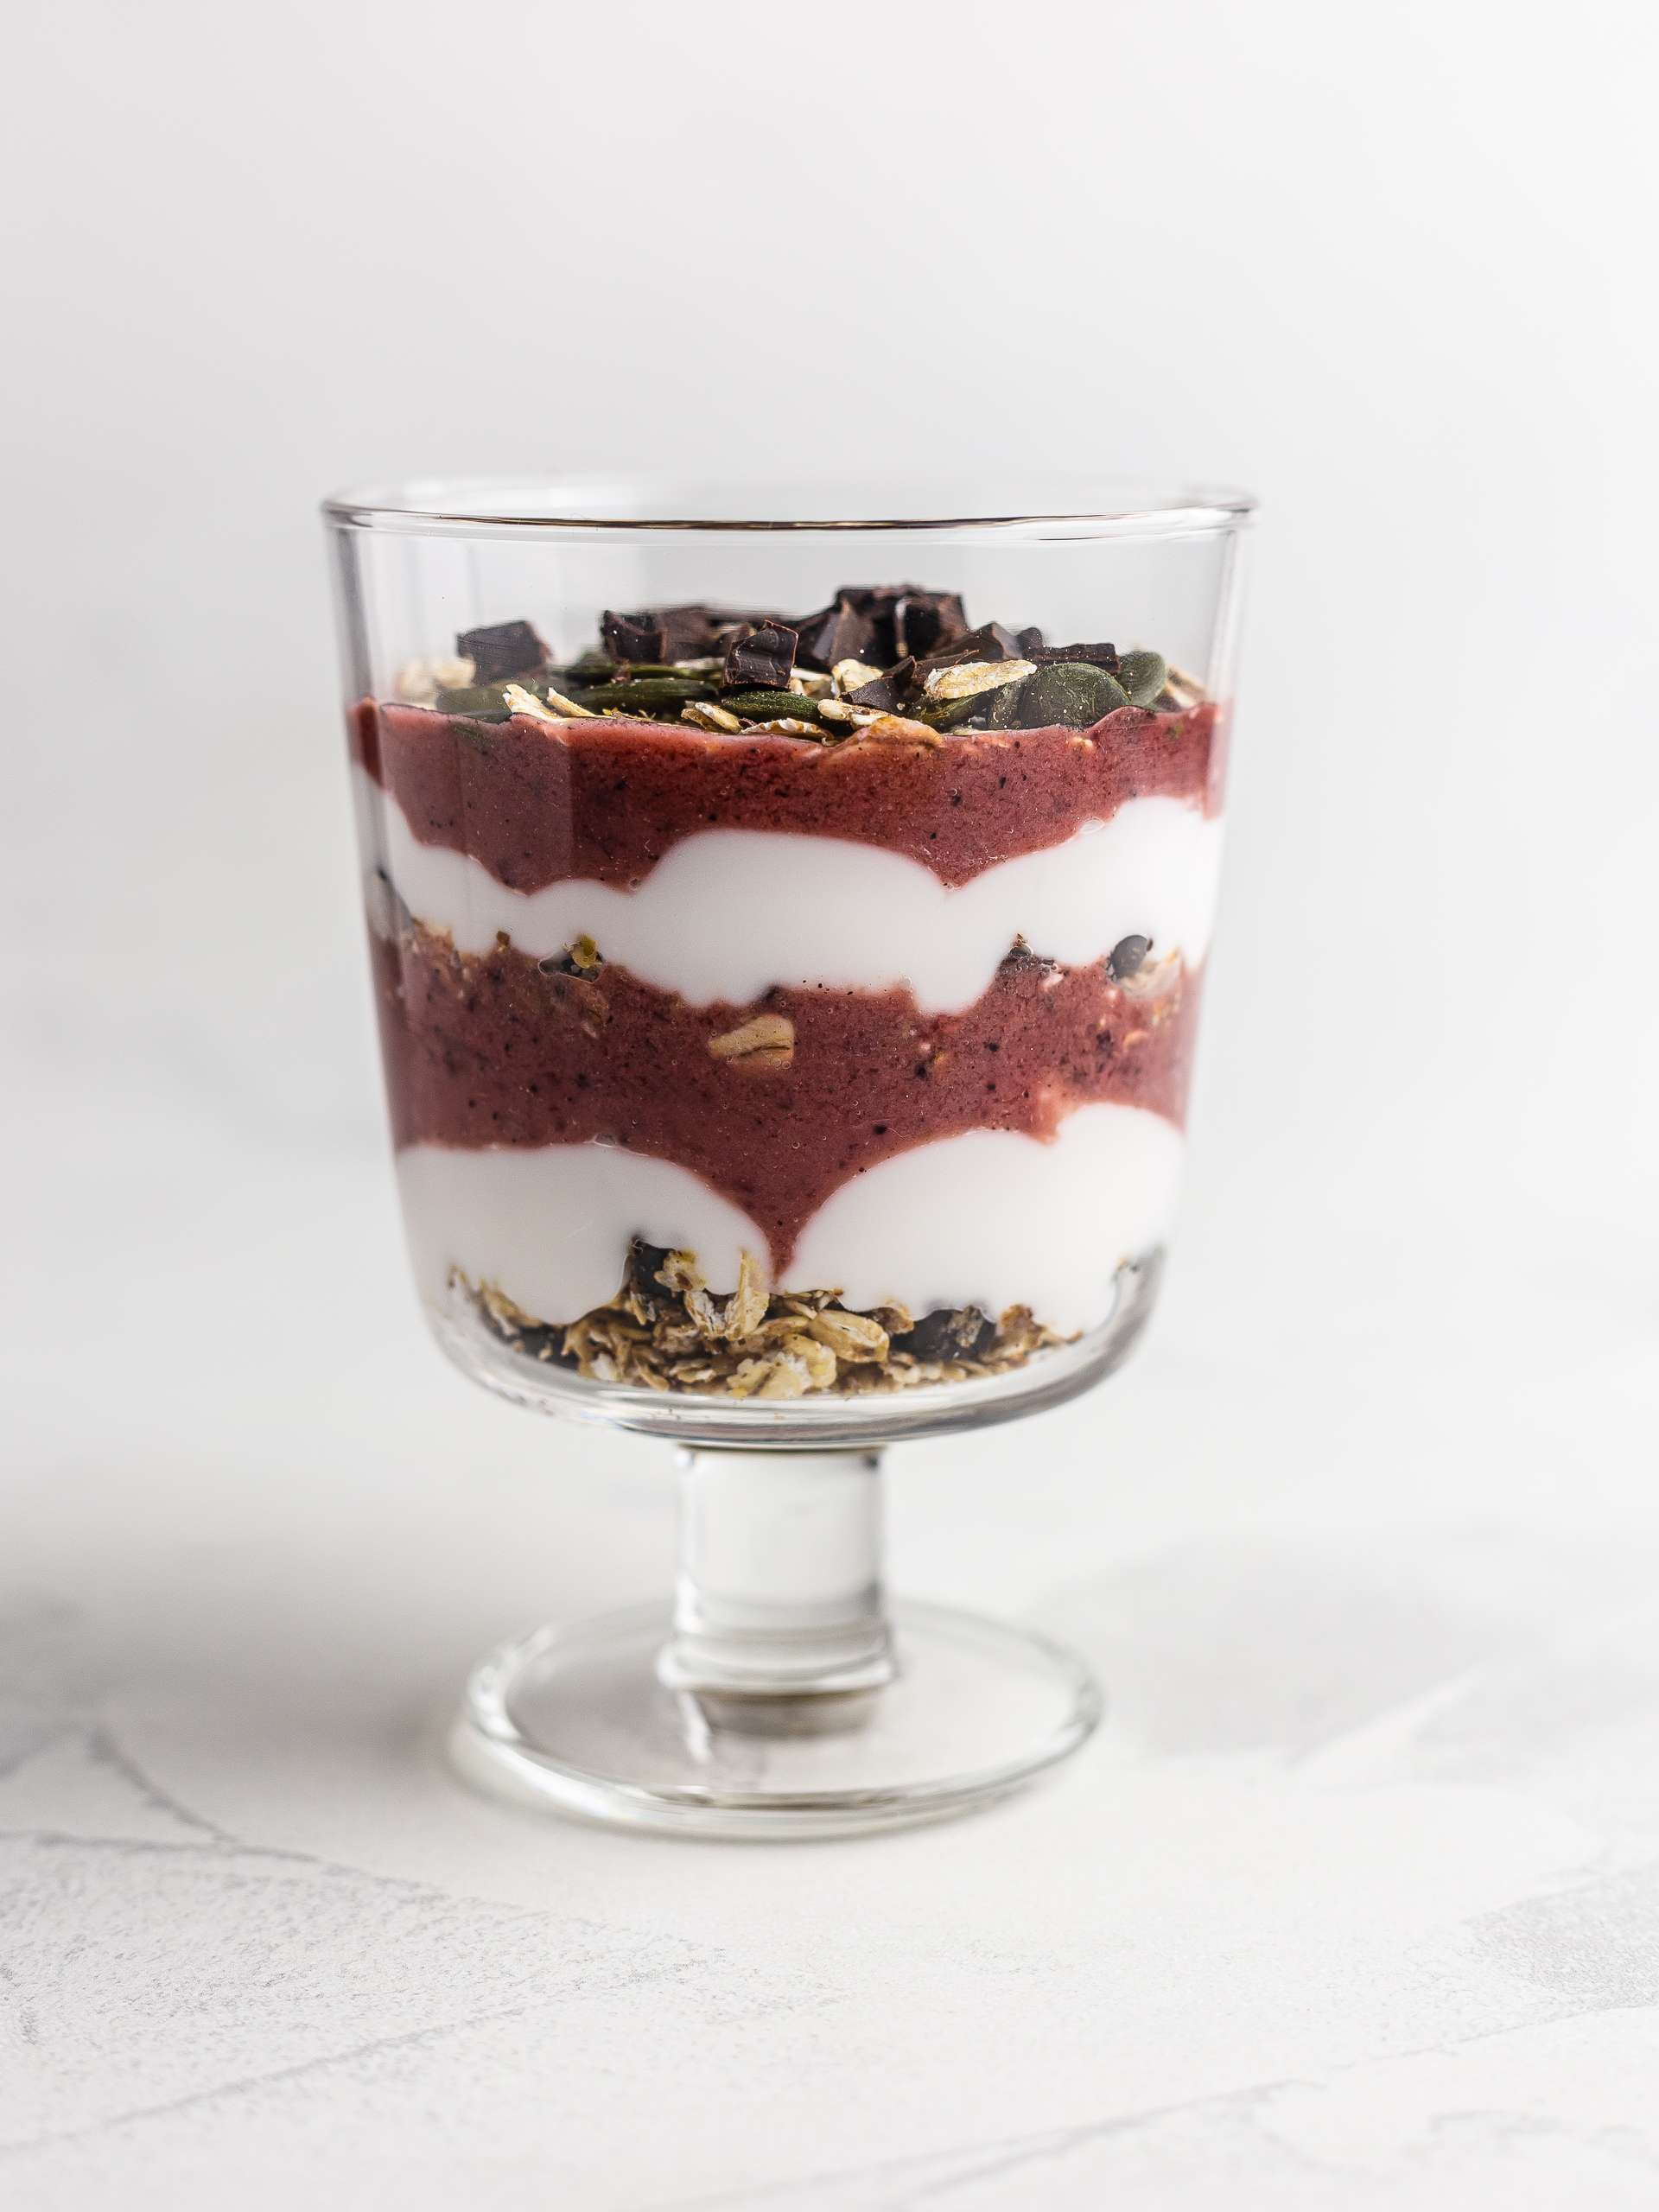 chocolate cherry parfait in a glass